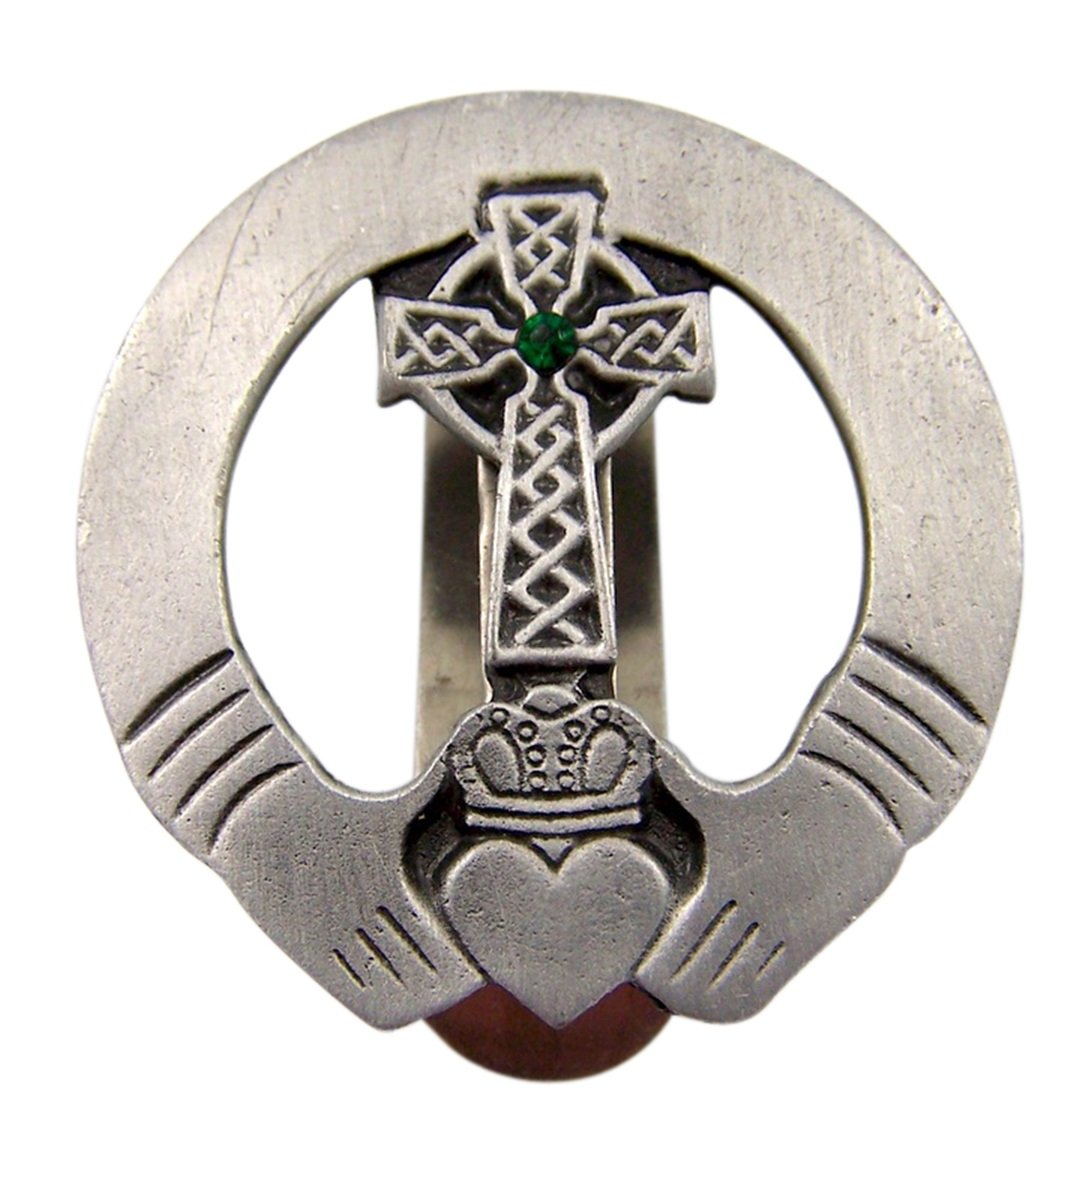 1 7//8 Inch Fine Pewter Irish Claddagh Celtic Cross Auto Visor Clip with Green Accent